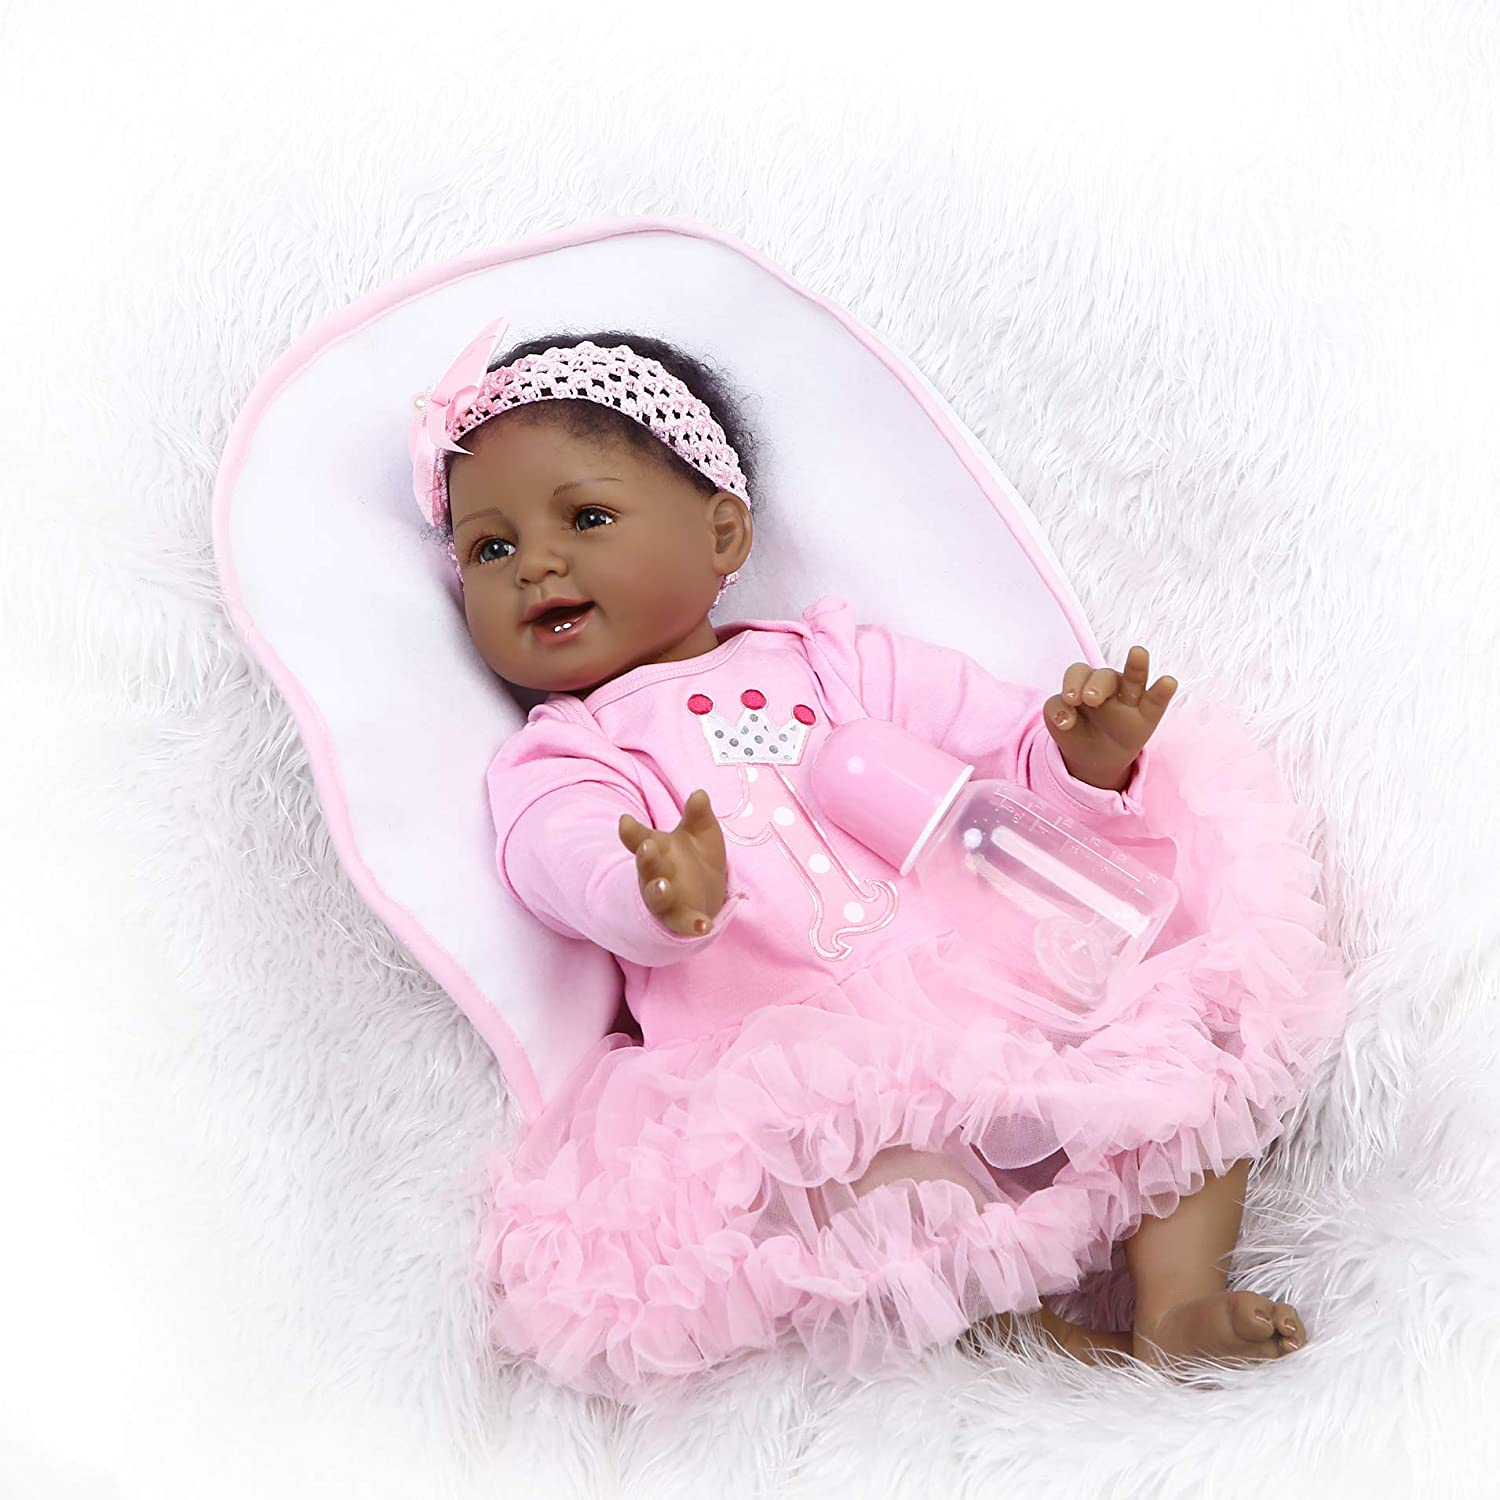 Pinky 22 Inch 55cm Lifelike Black Indian African Soft Body Silicone Reborn Baby Dolls Girl Princess Realistic Looking Newborn Doll Toddler Eyes Open Birthday Xmas Gift